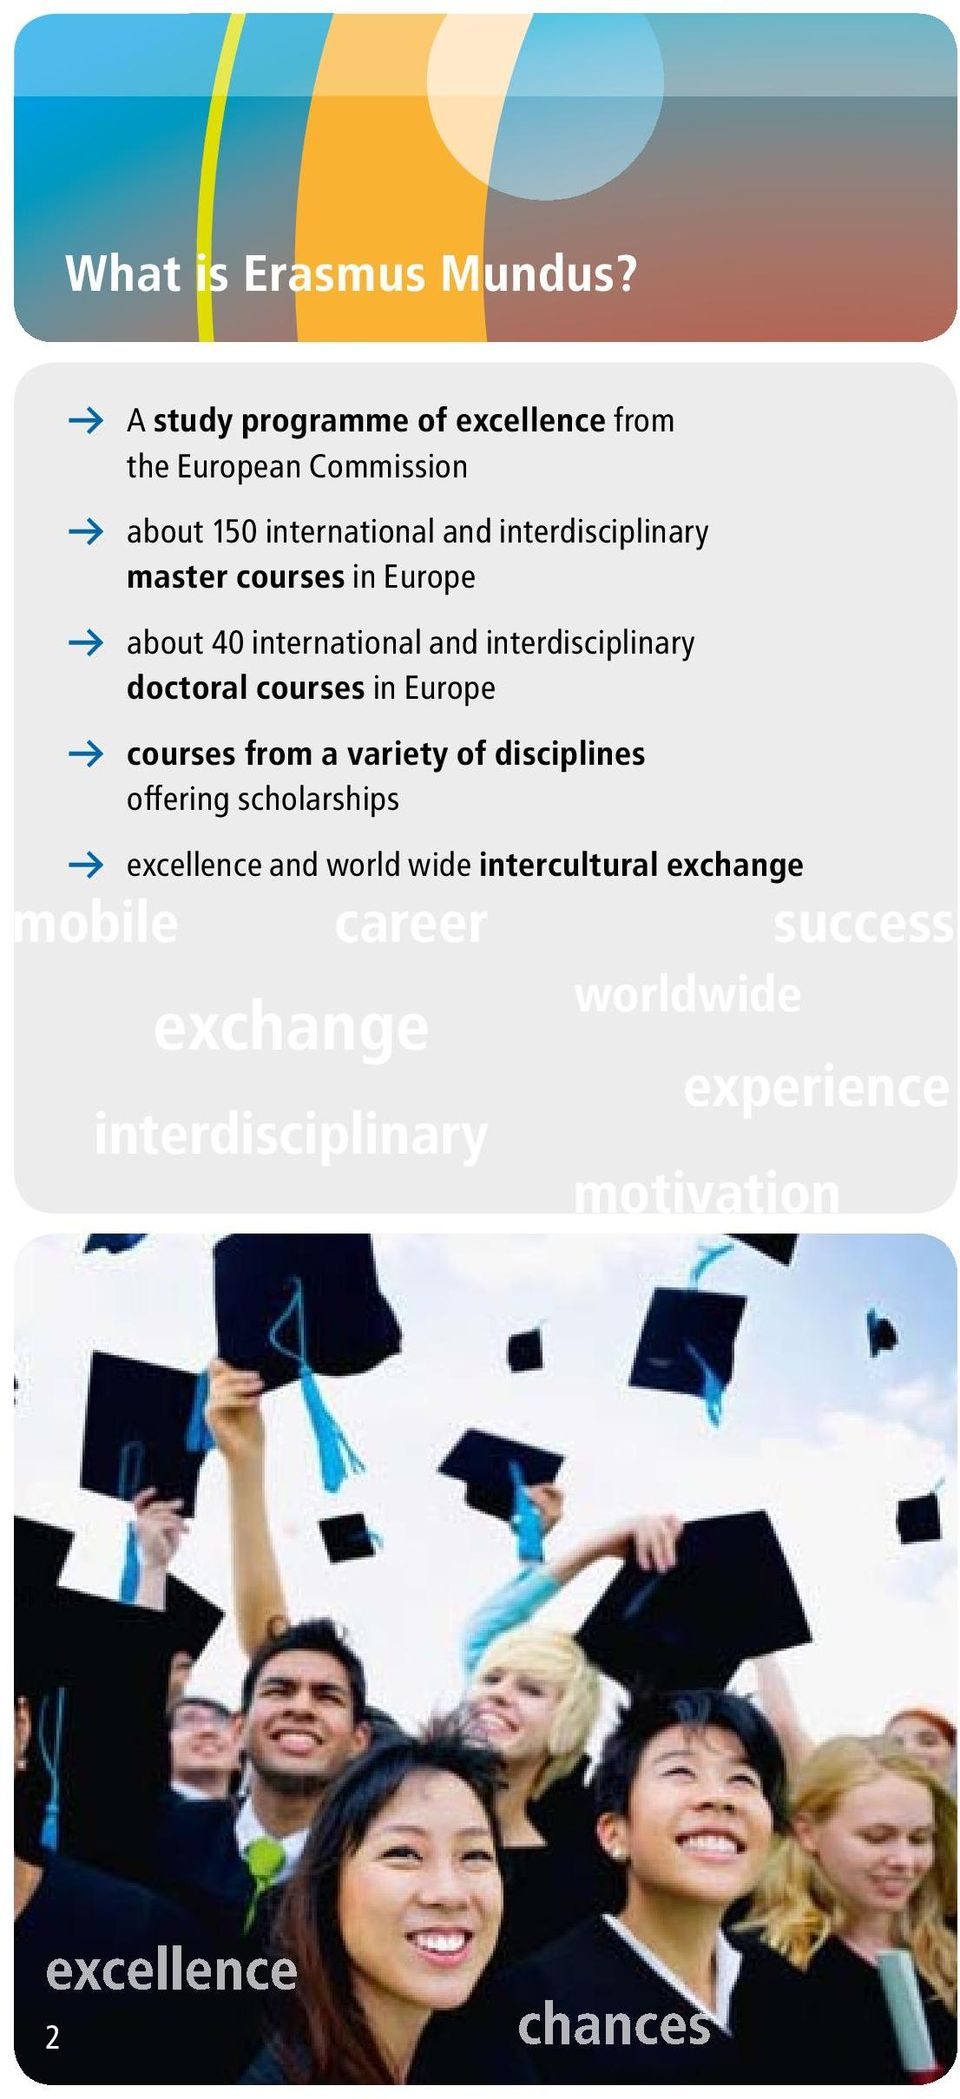 master courses in Europe about 40 international and interdisciplinary doctoral courses in Europe courses from